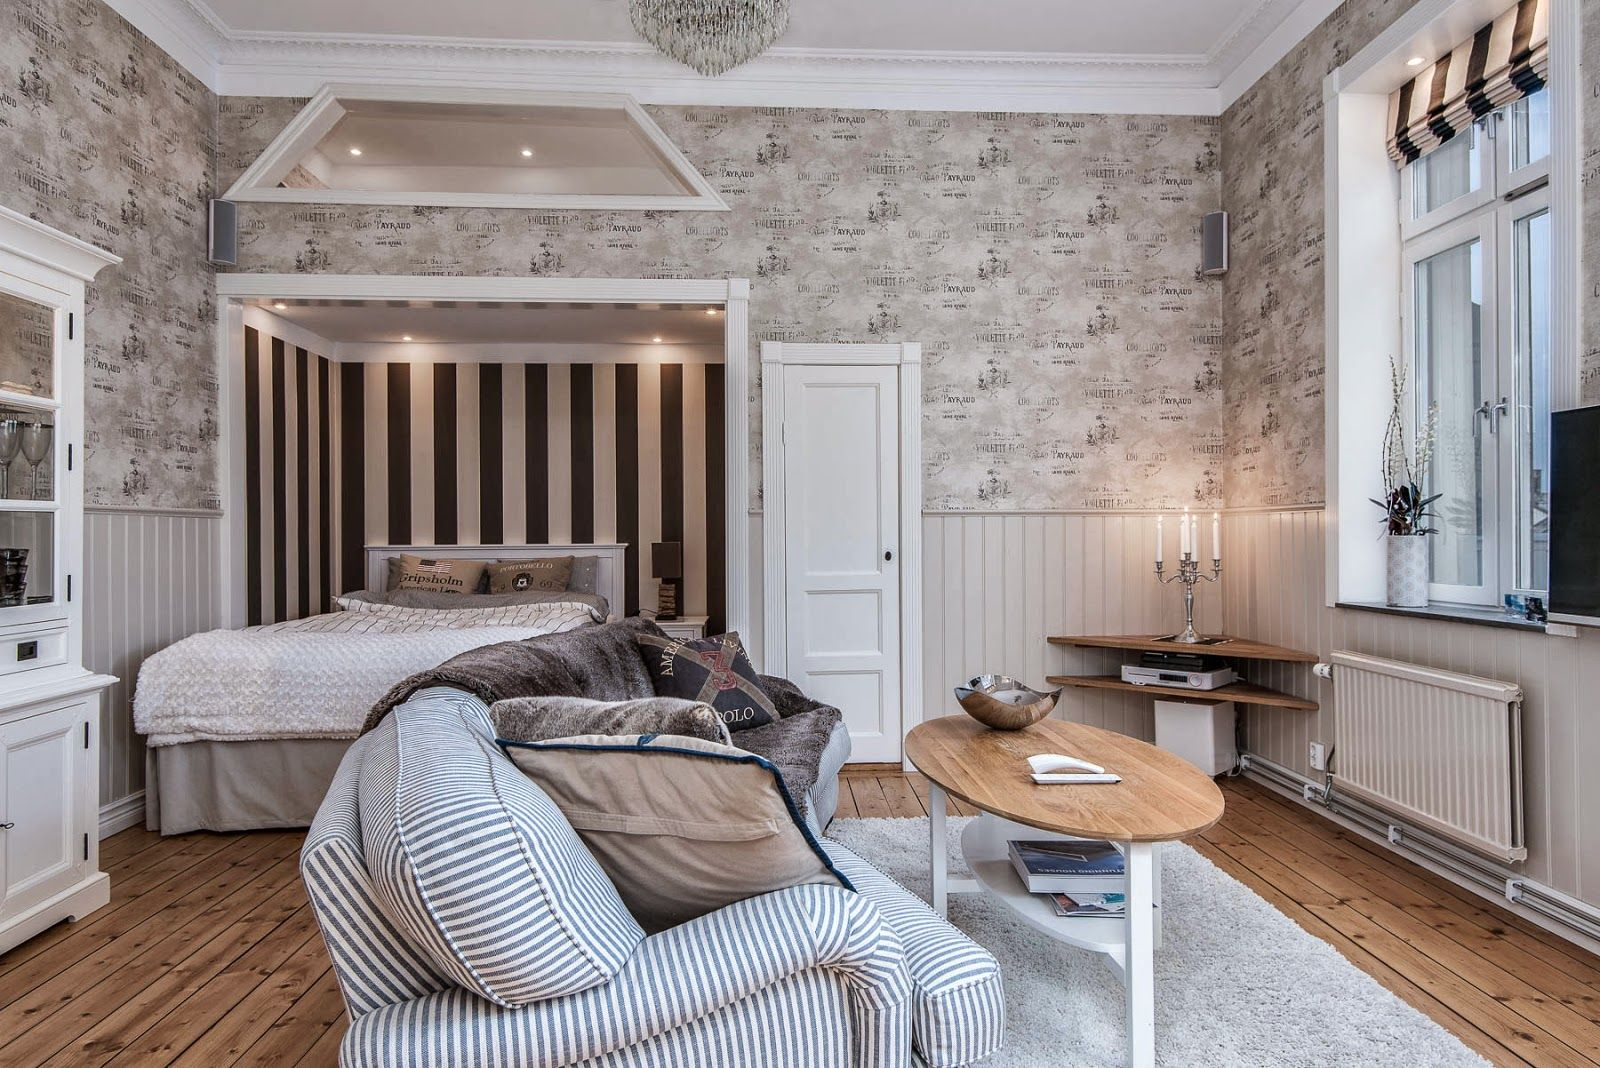 How to decorate around the bed in a small apartment for Appartement deco cocooning